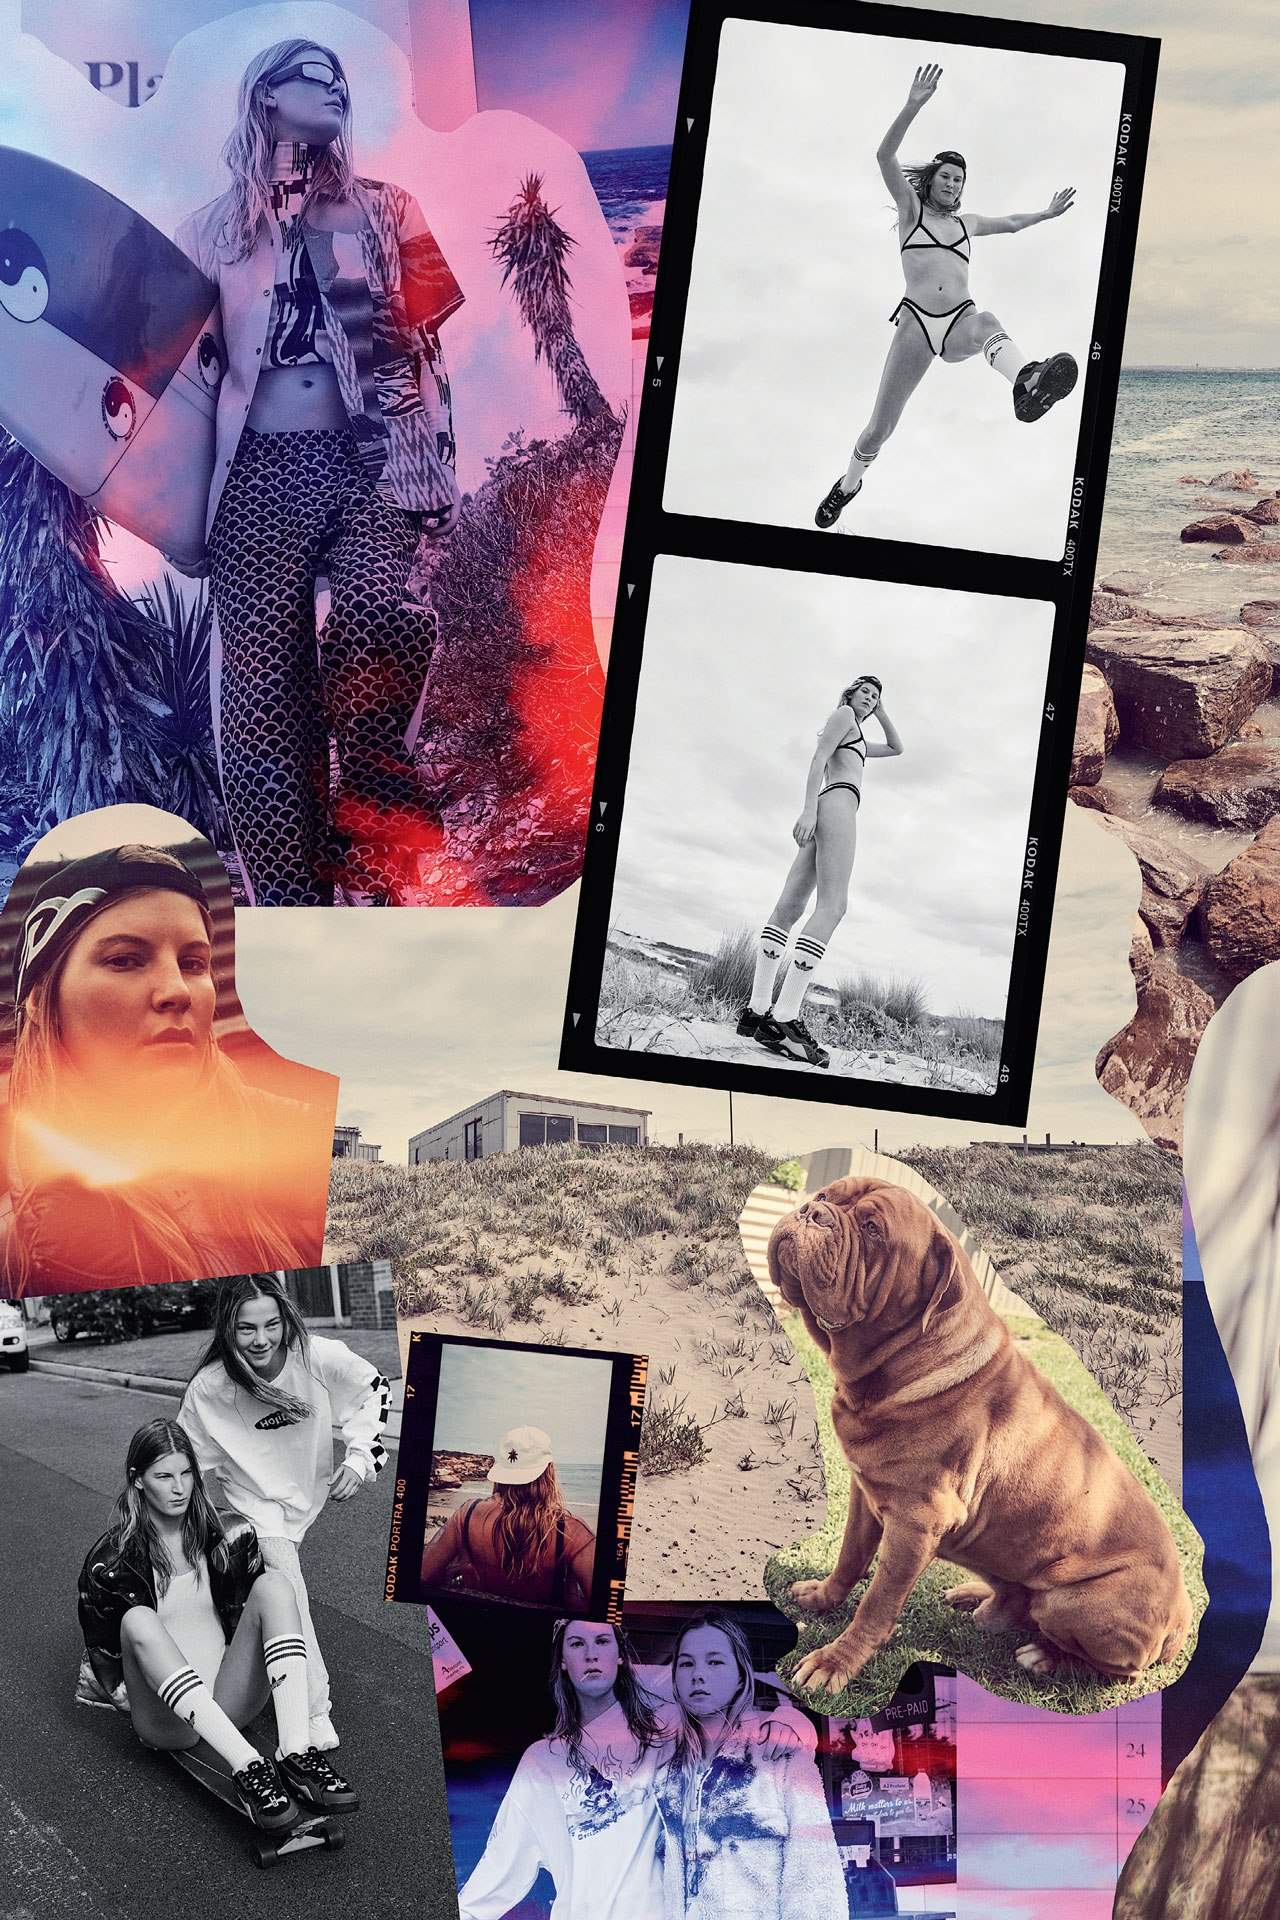 Familiarise yourself with the Australian labels leading the wave on fashion's surfer obsession